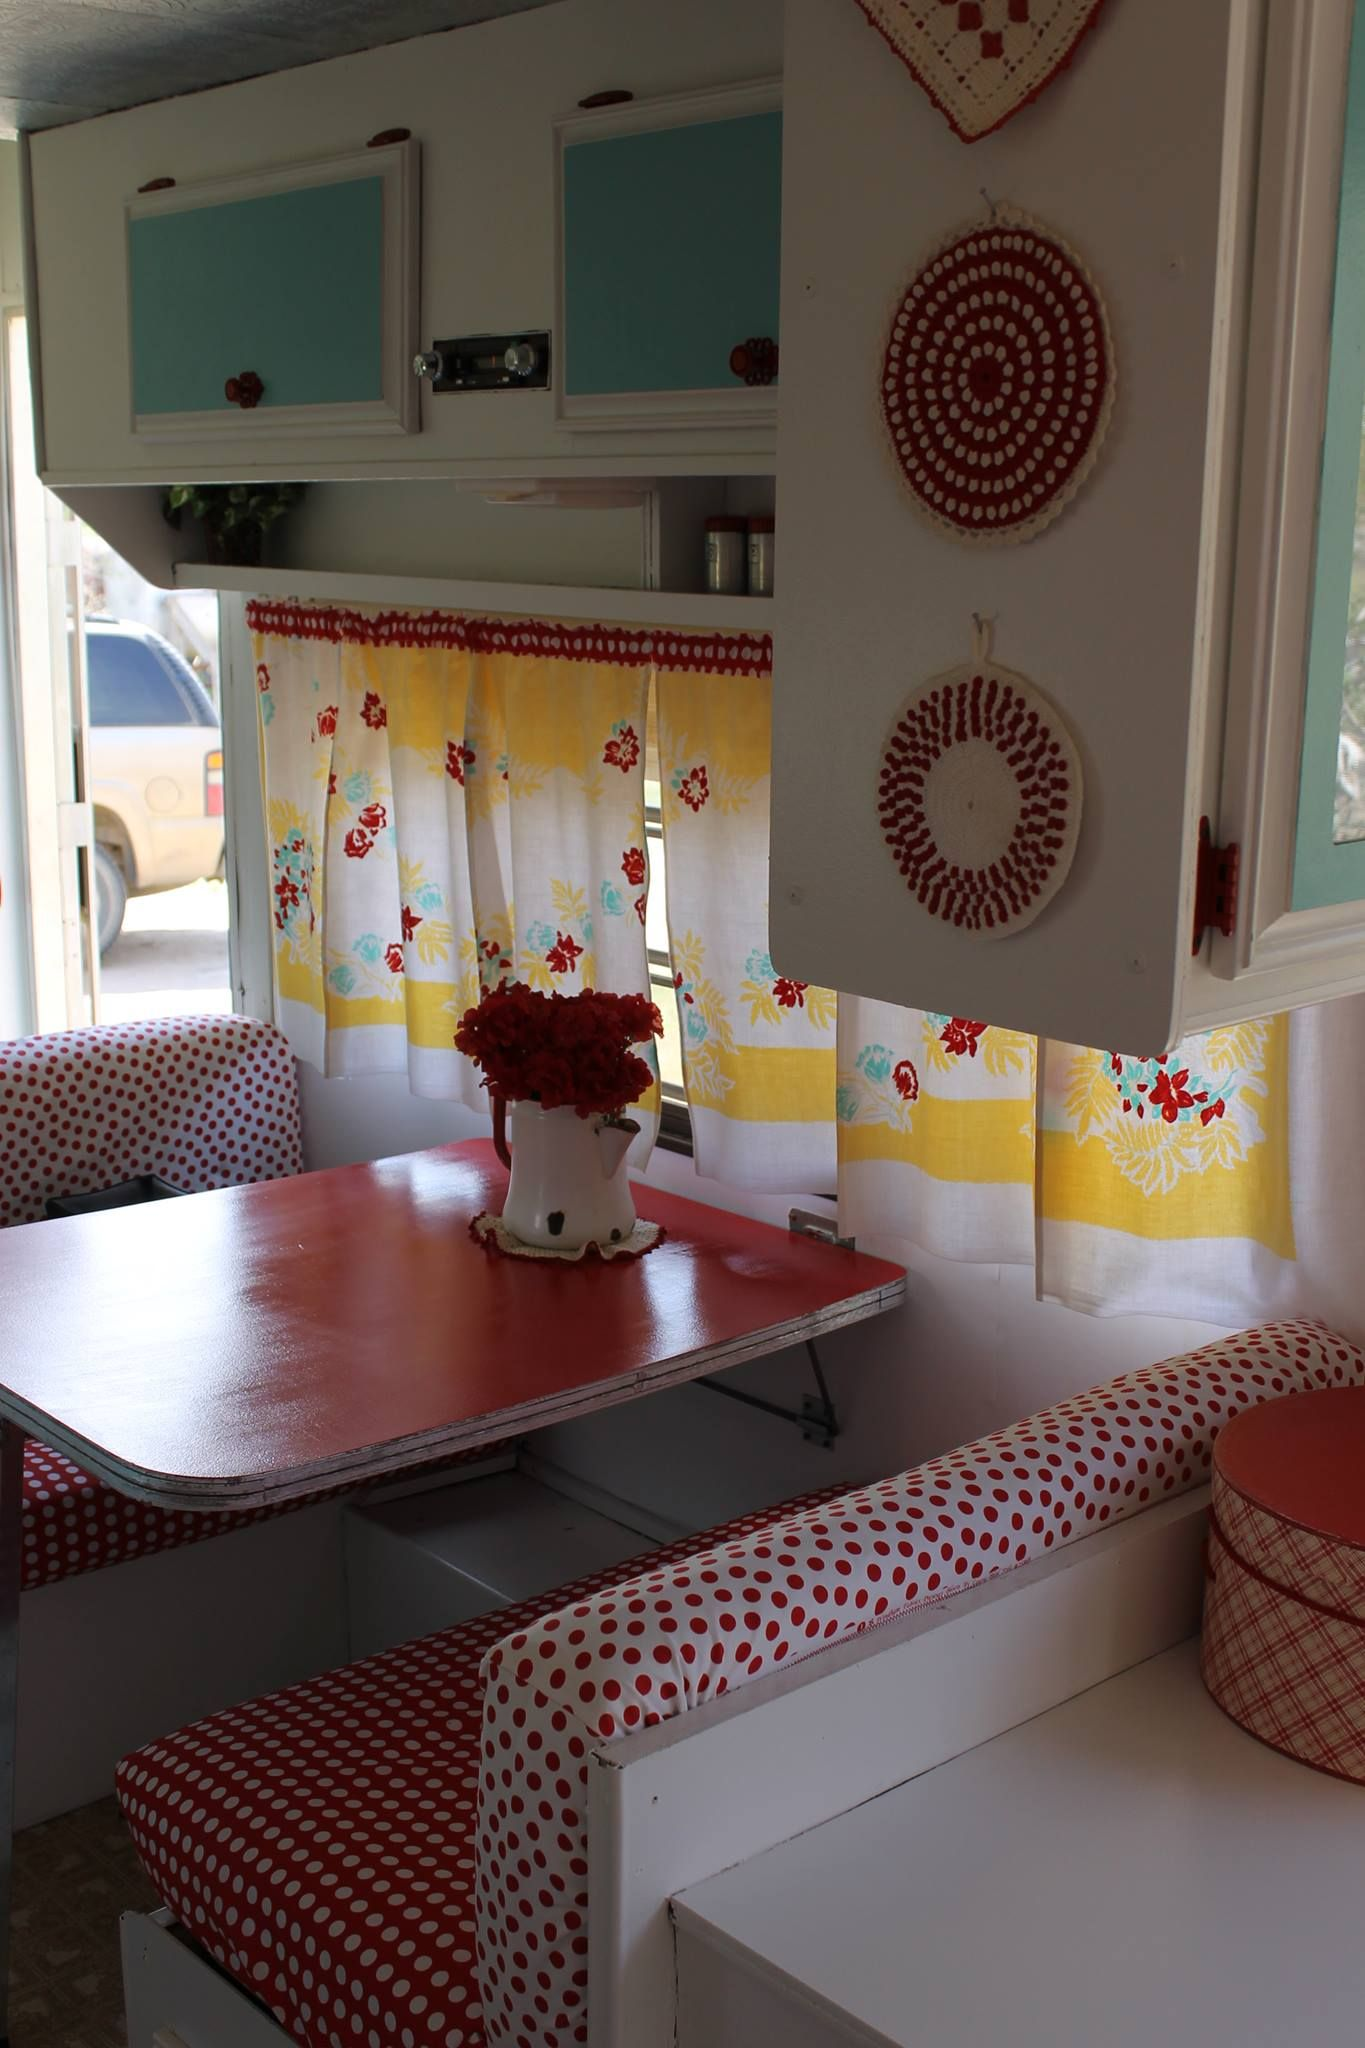 My Redo Of Our Manufactured Home In 2019: My 1984 Camper Redo. Vintage Tablecloth Made Into Curtains